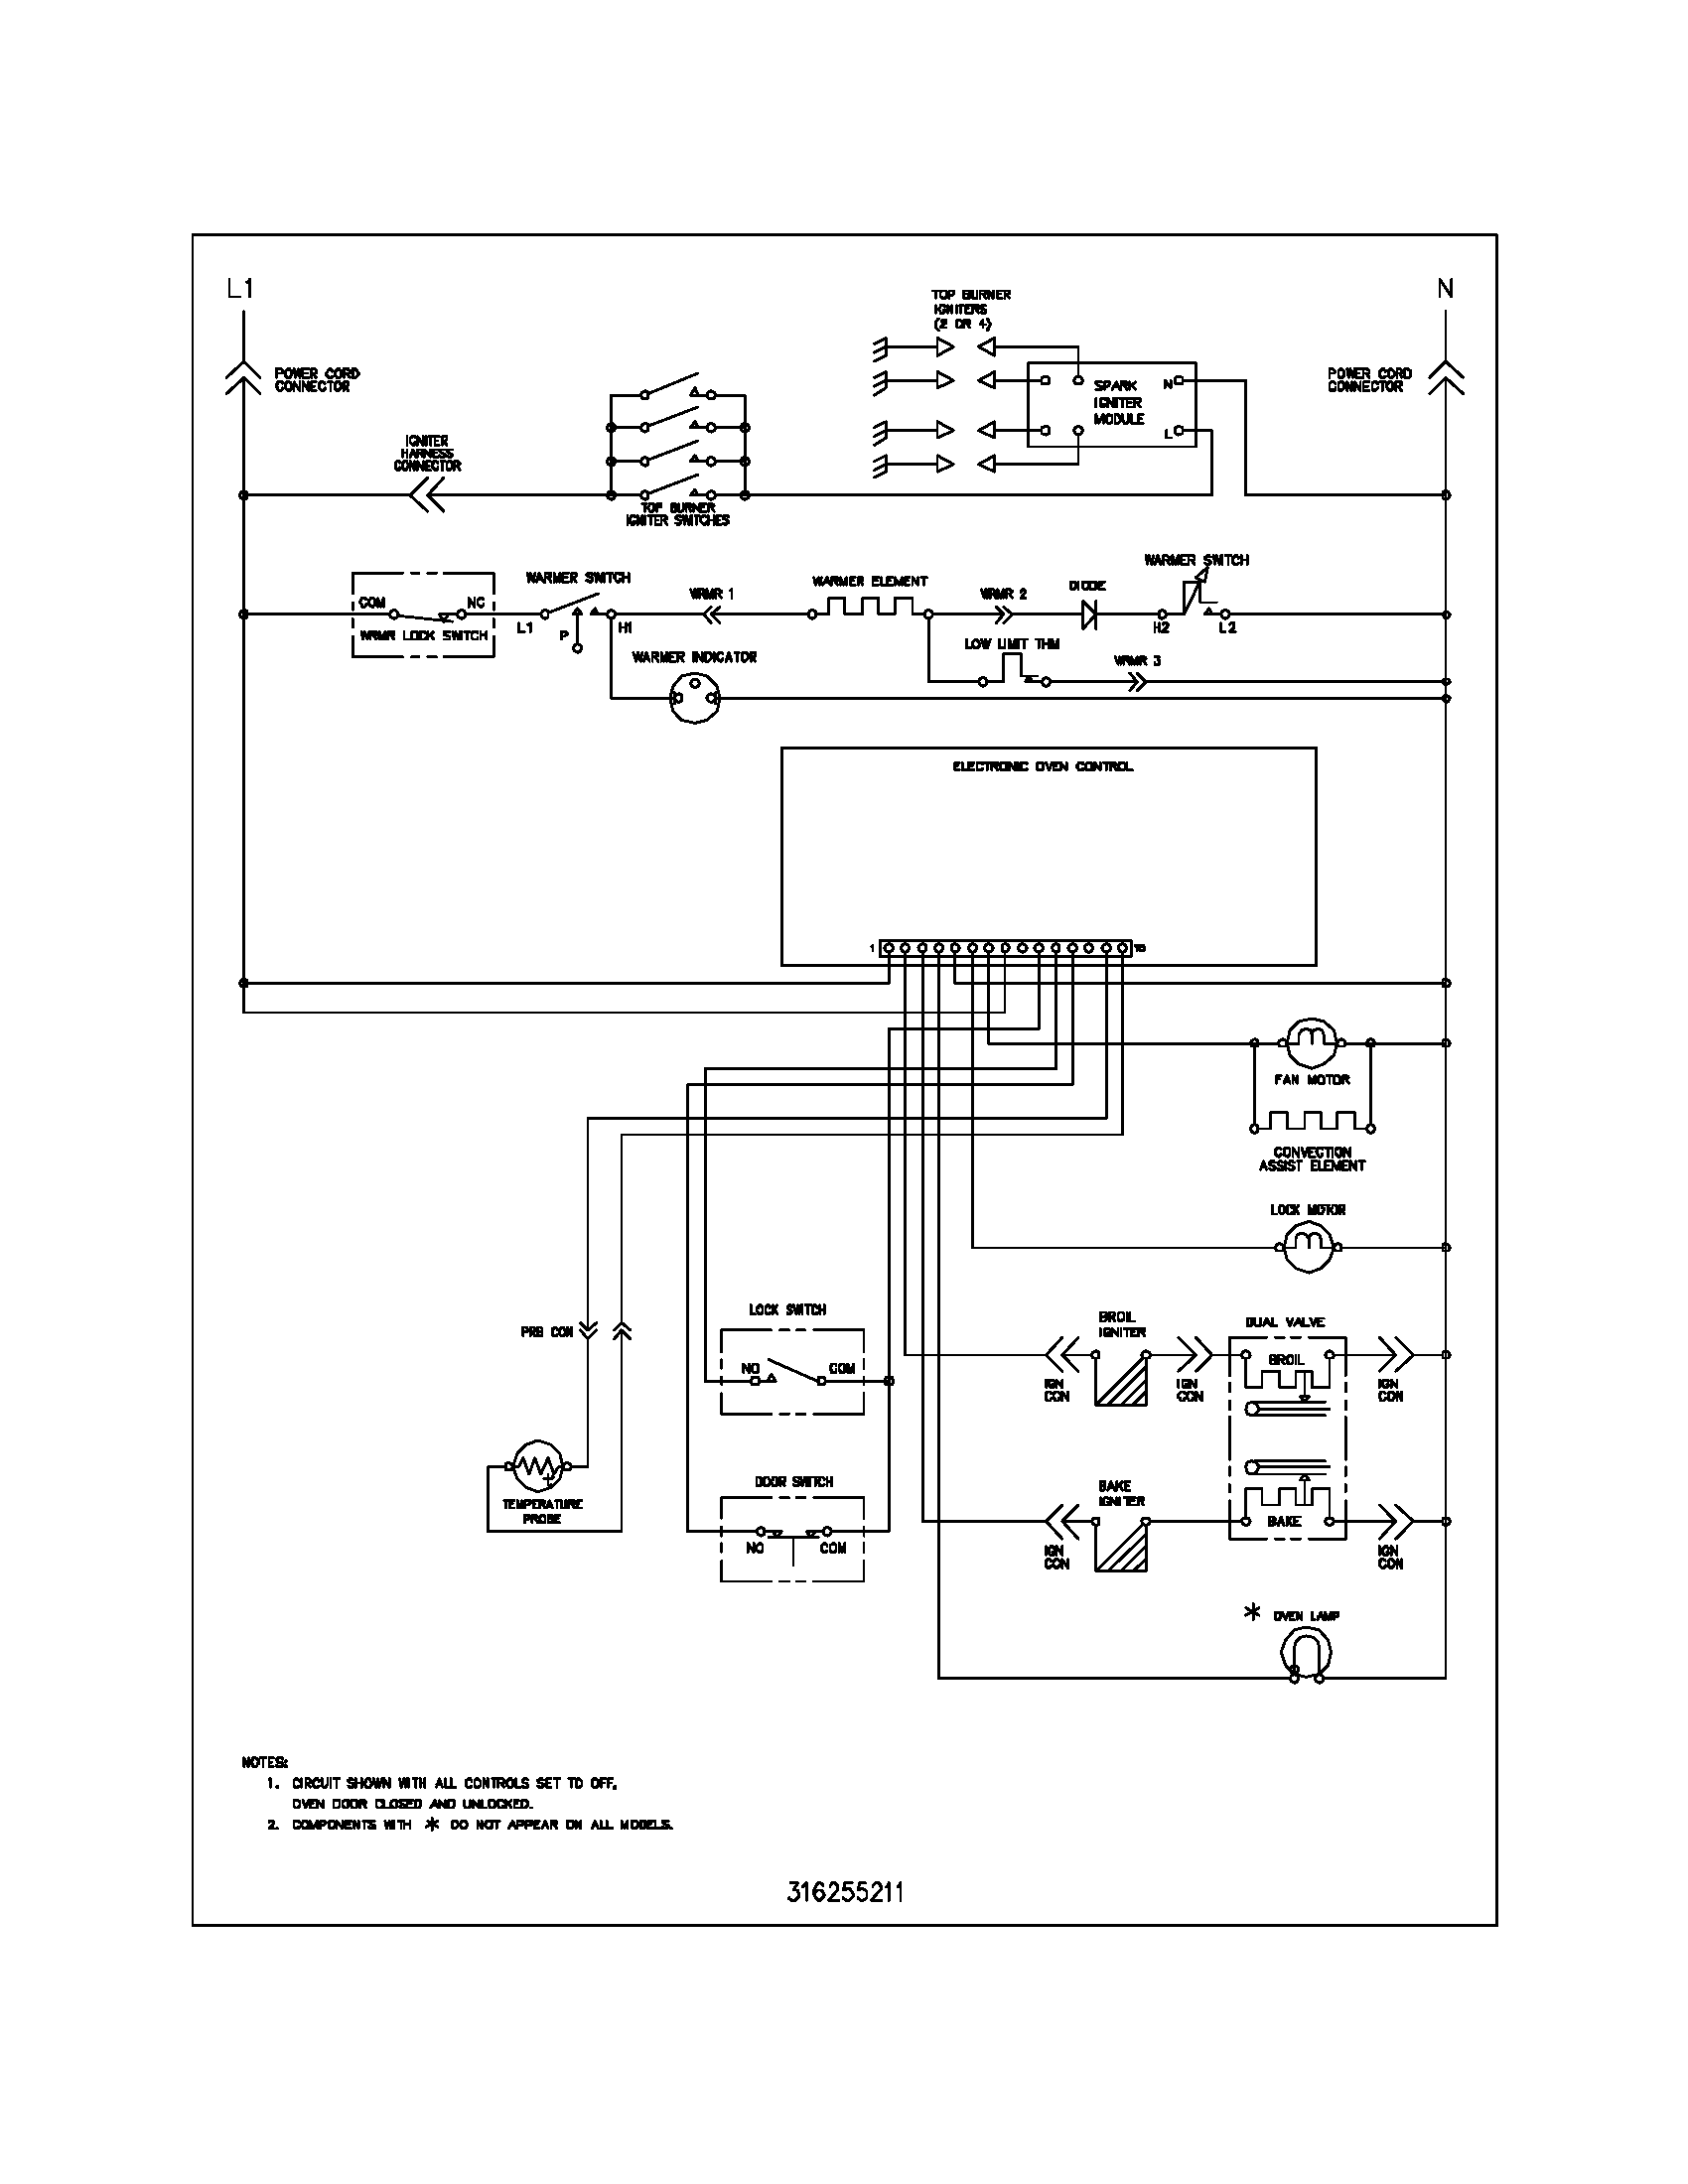 Wiring Diagram 350 Residential Wood Stove 41 Images Typical Thermostat Schematic Parts Frigidaire Plgf389ccc Gas Range Timer Clocks And Appliance Old Furnace